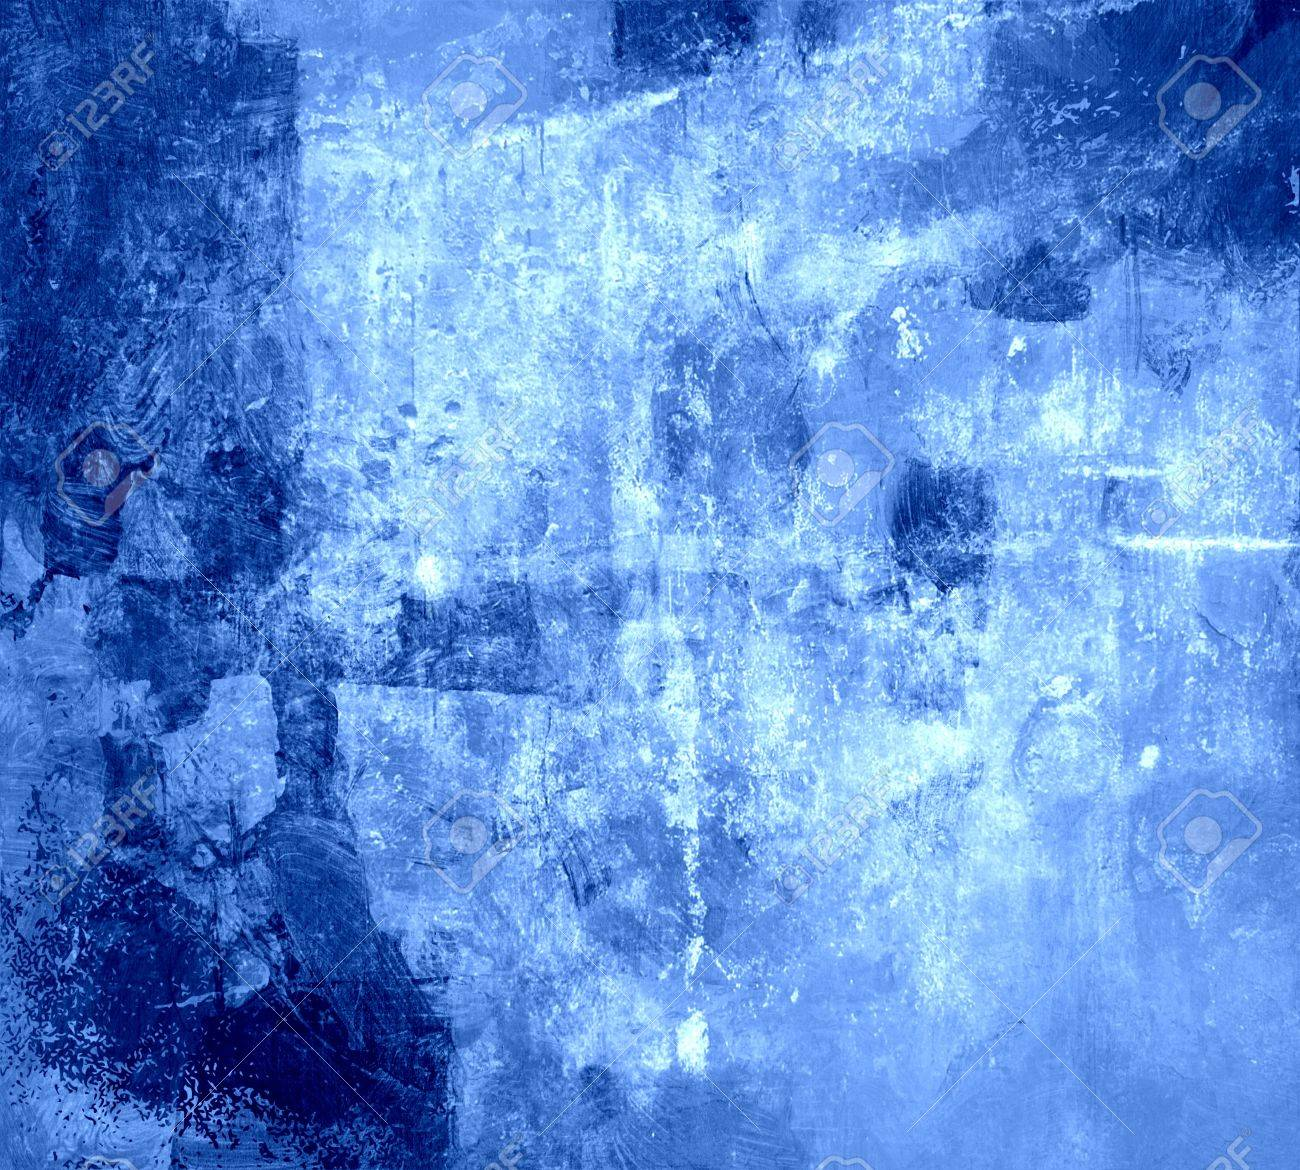 Dark Blue Grunge Texture Background Stock Photo Picture And Royalty Free Image Image 15851558